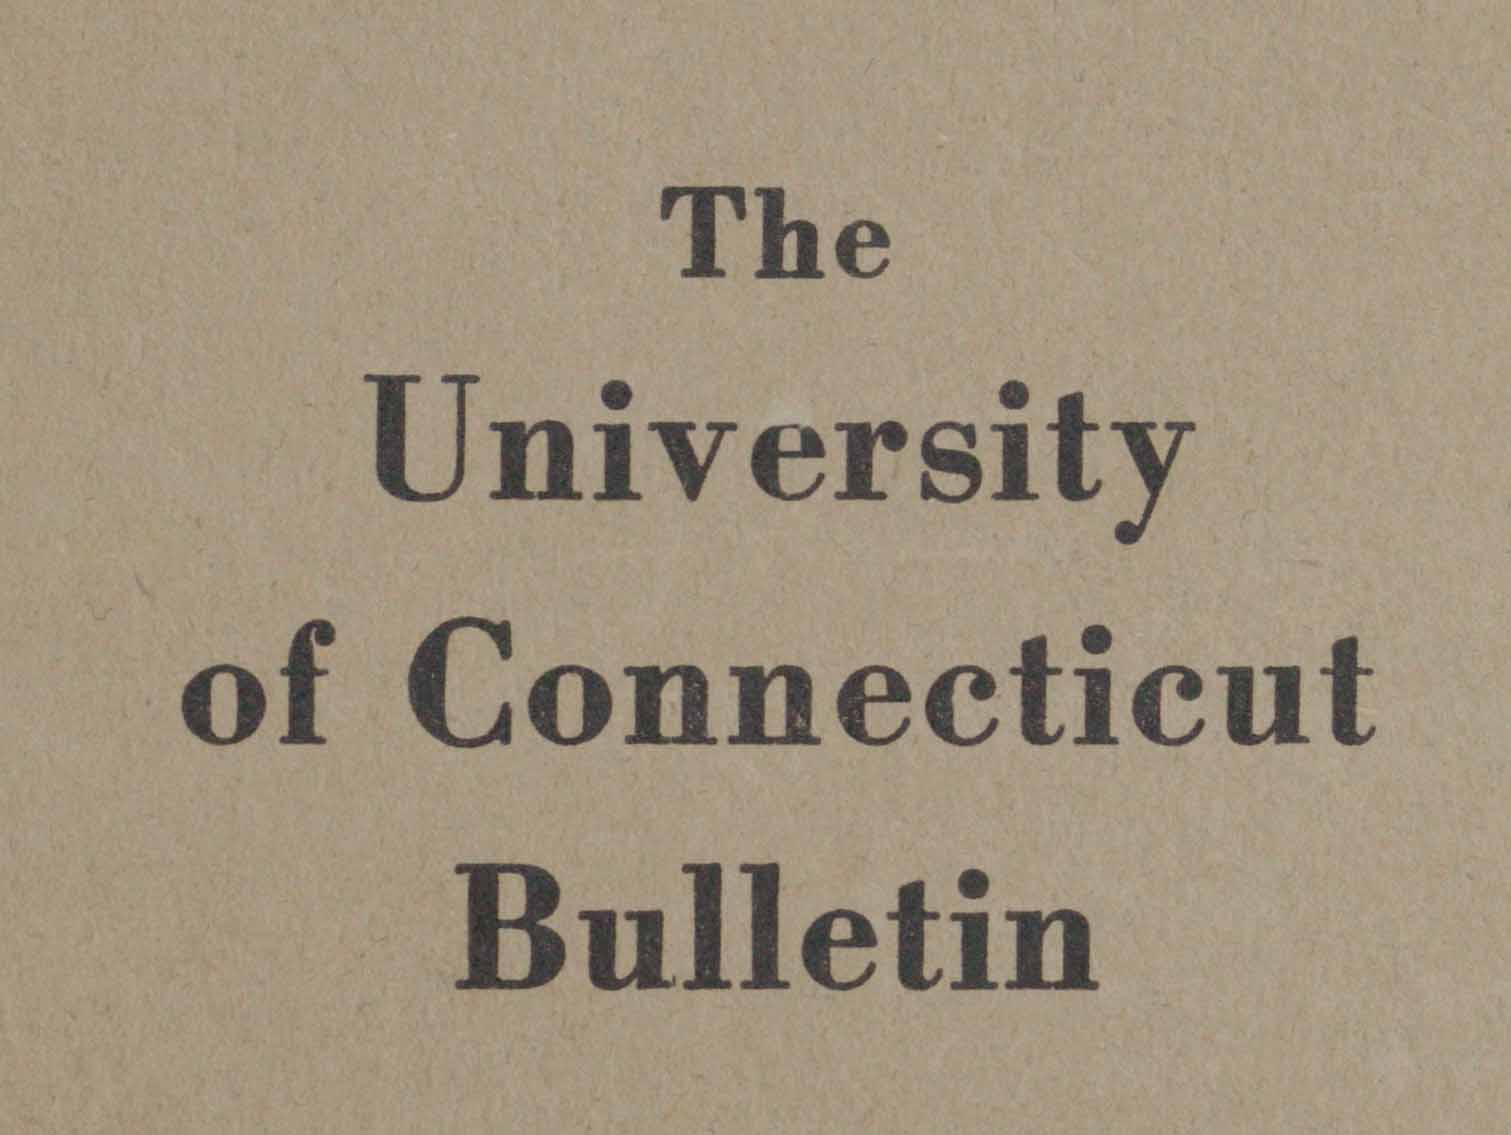 University of Connecticut Bulletin